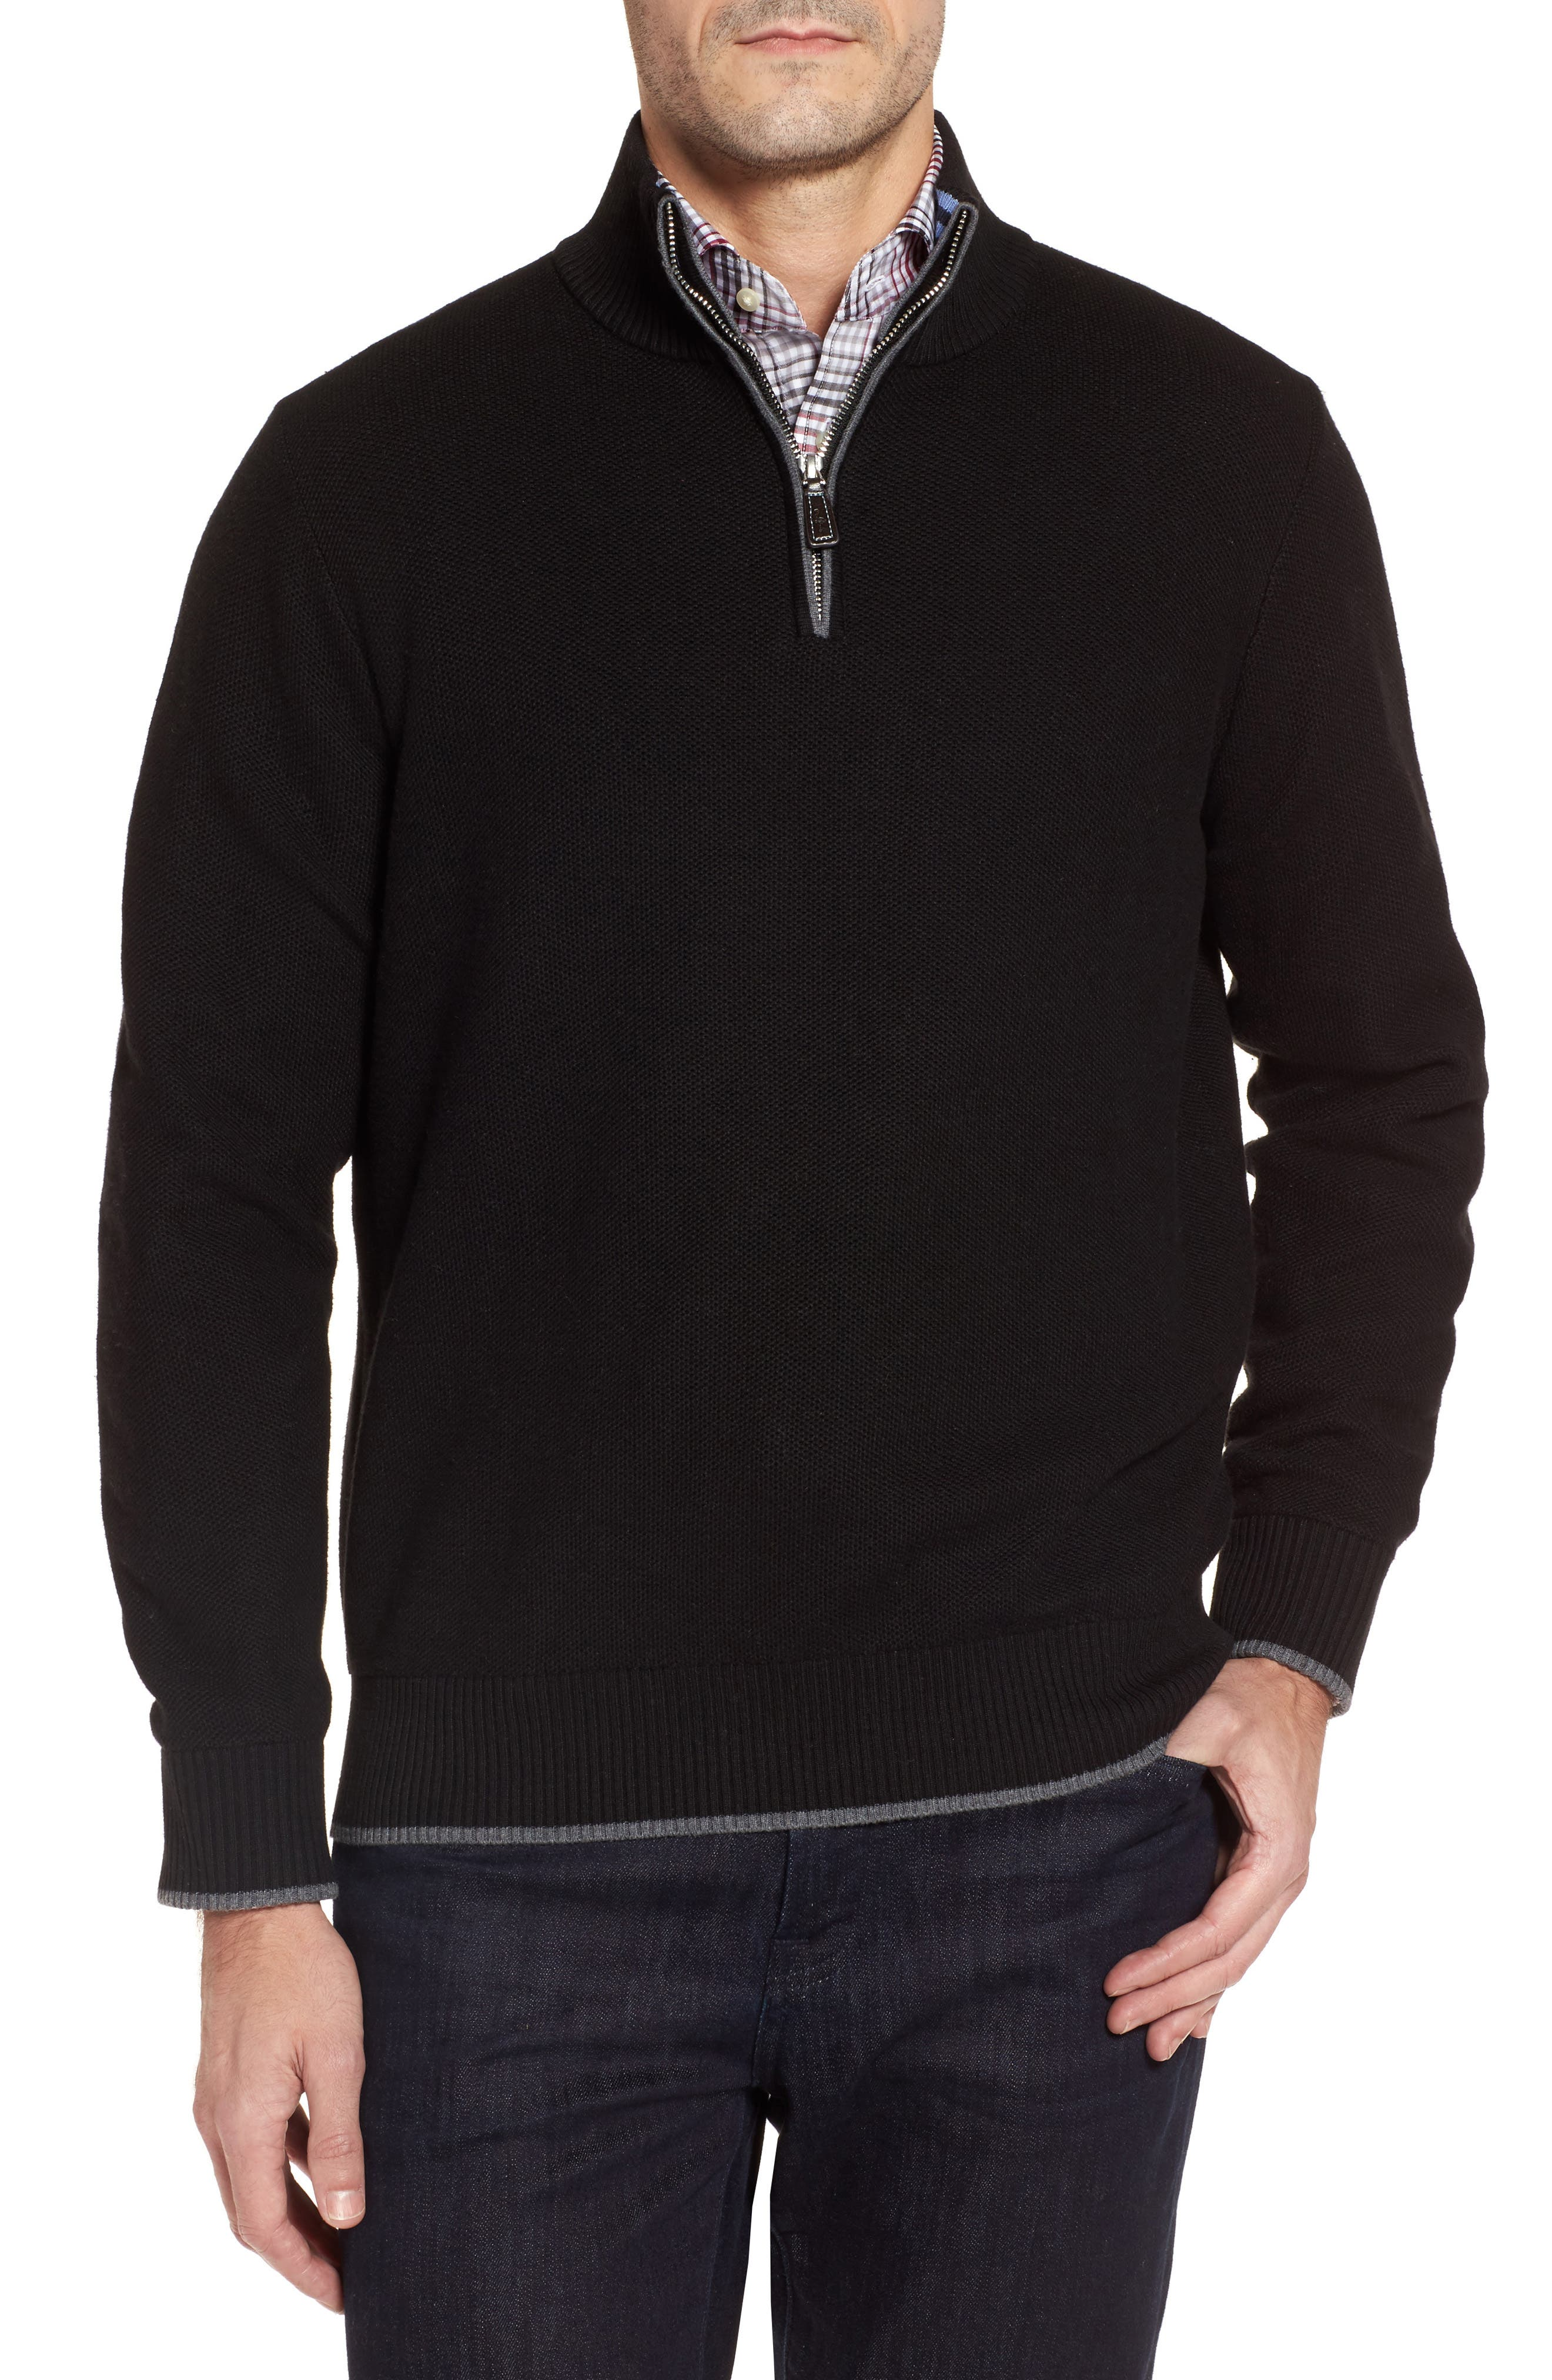 Main Image - TailorByrd Lafitte Tipped Quarter Zip Sweater